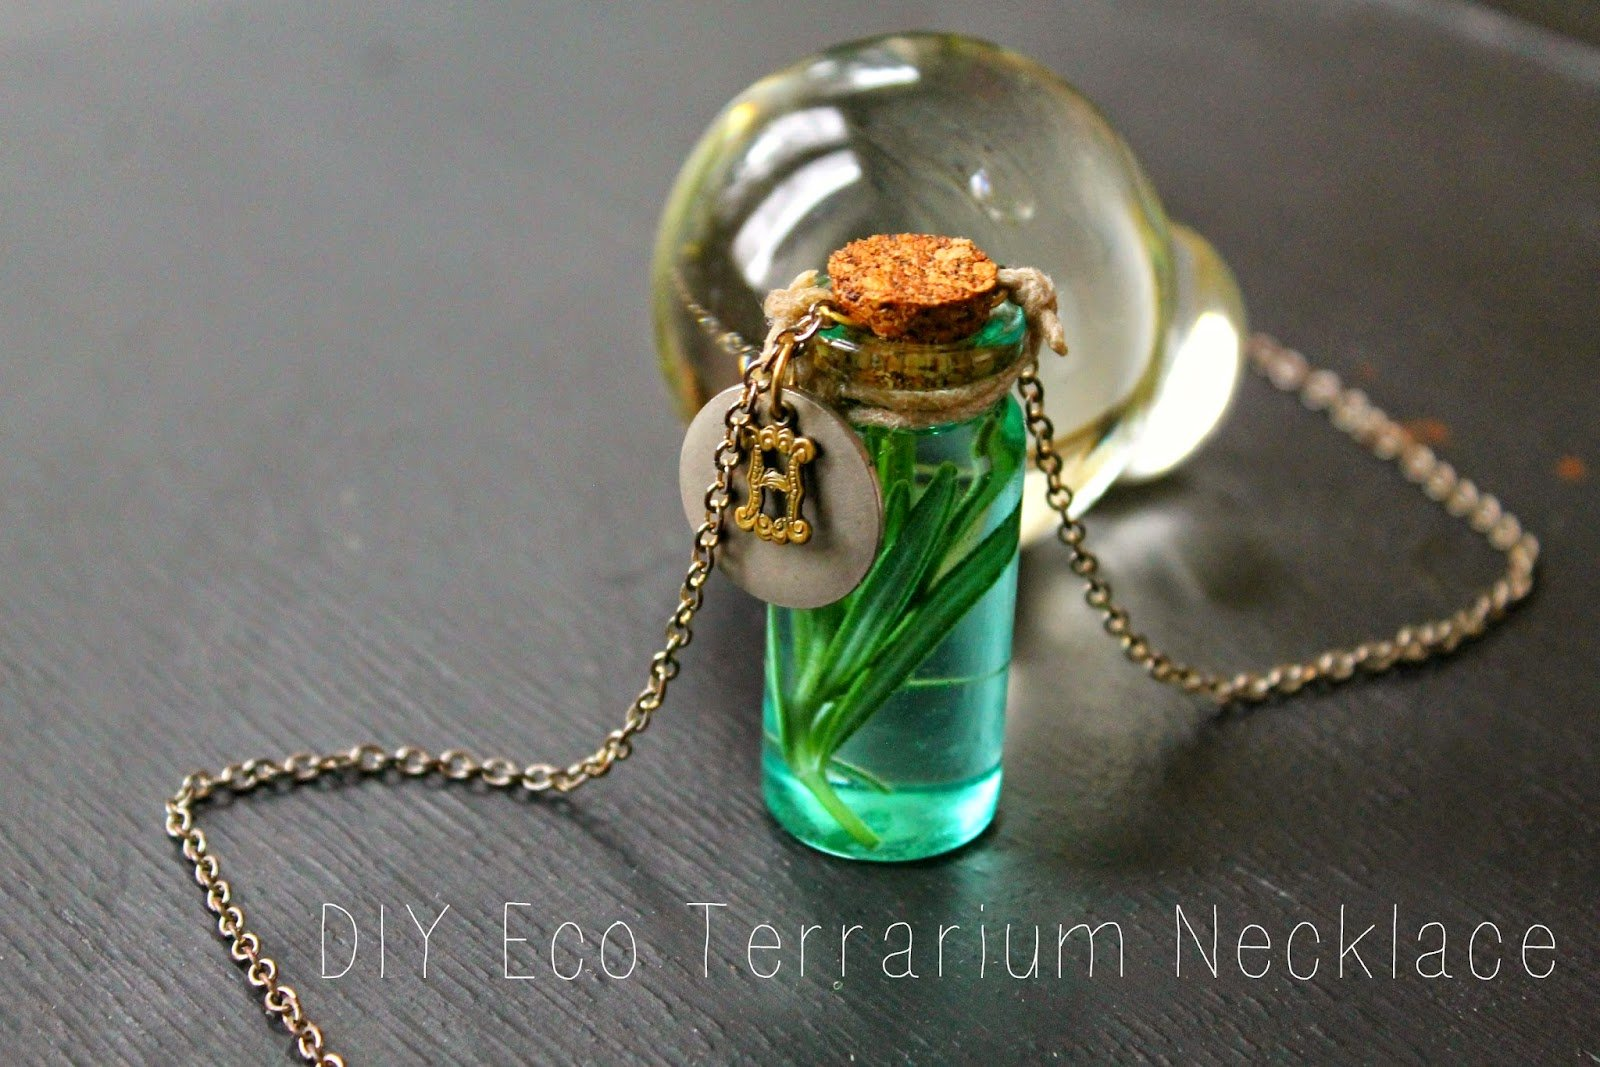 10 Designs To Make A Terrarium Necklace Guide Patterns